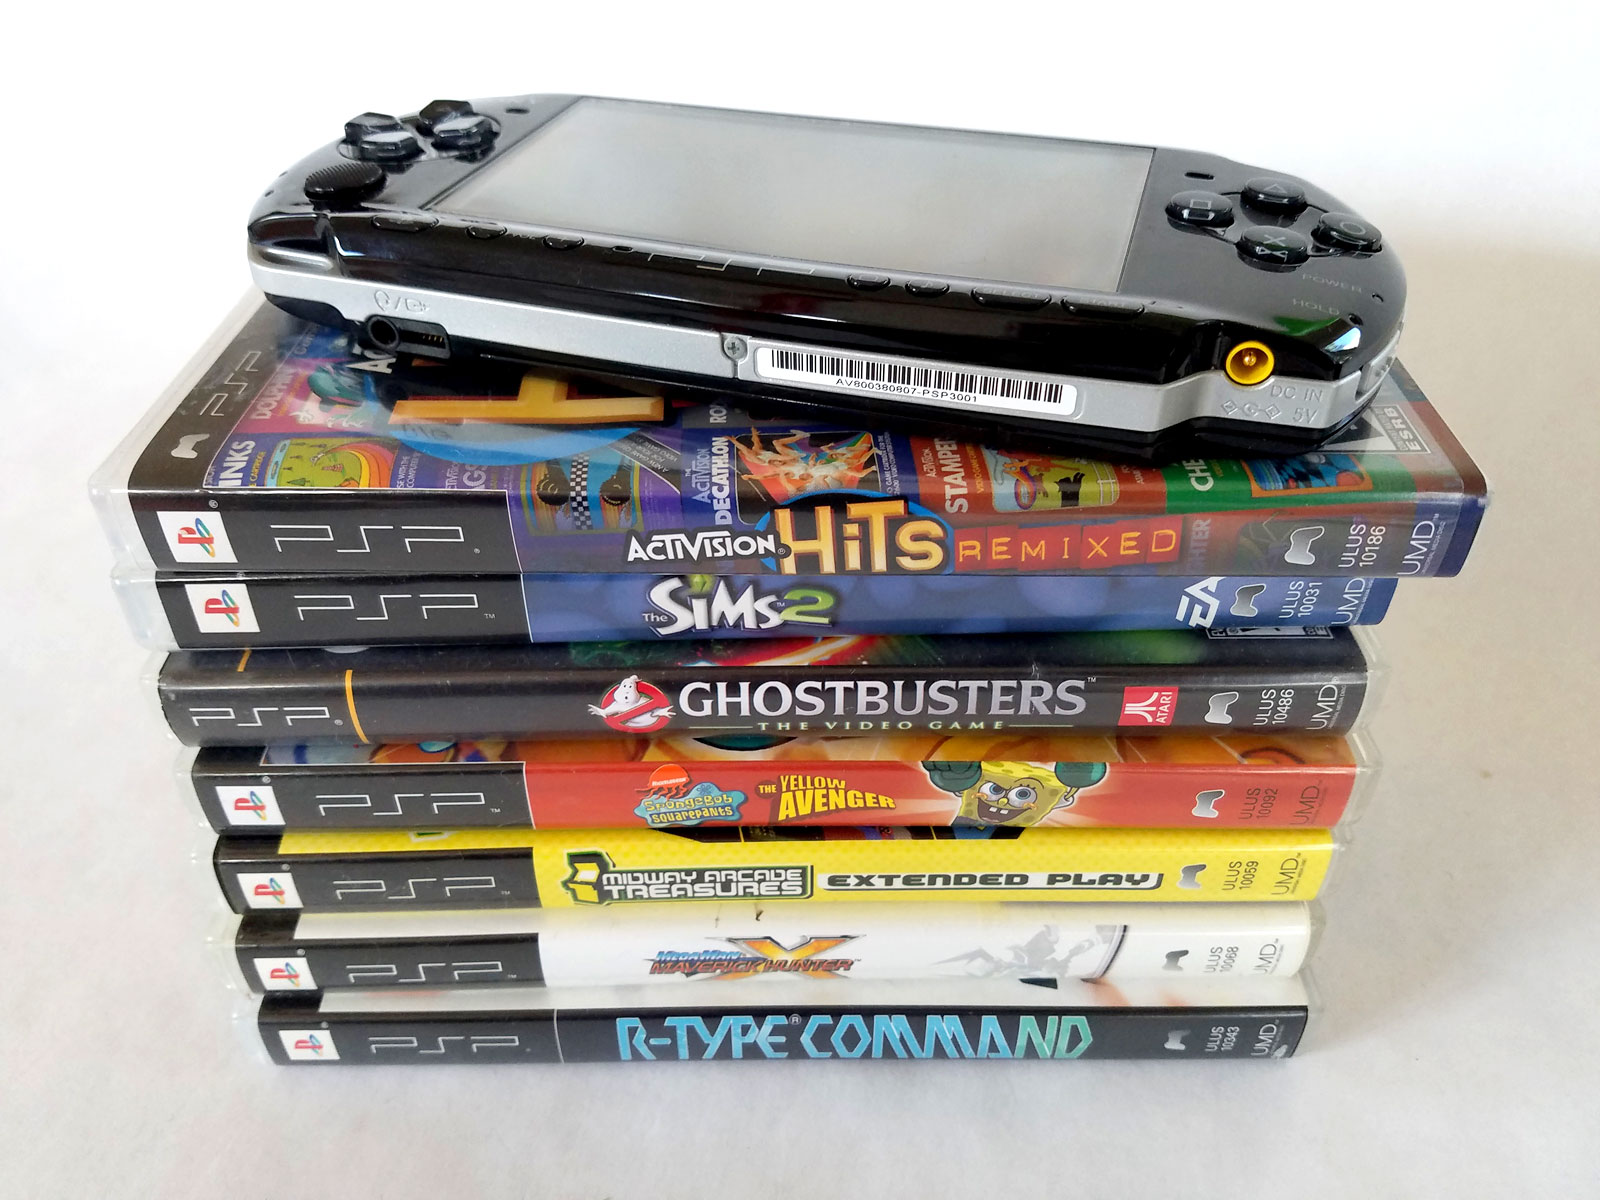 Sonys Playstation Portable is the only handheld to use